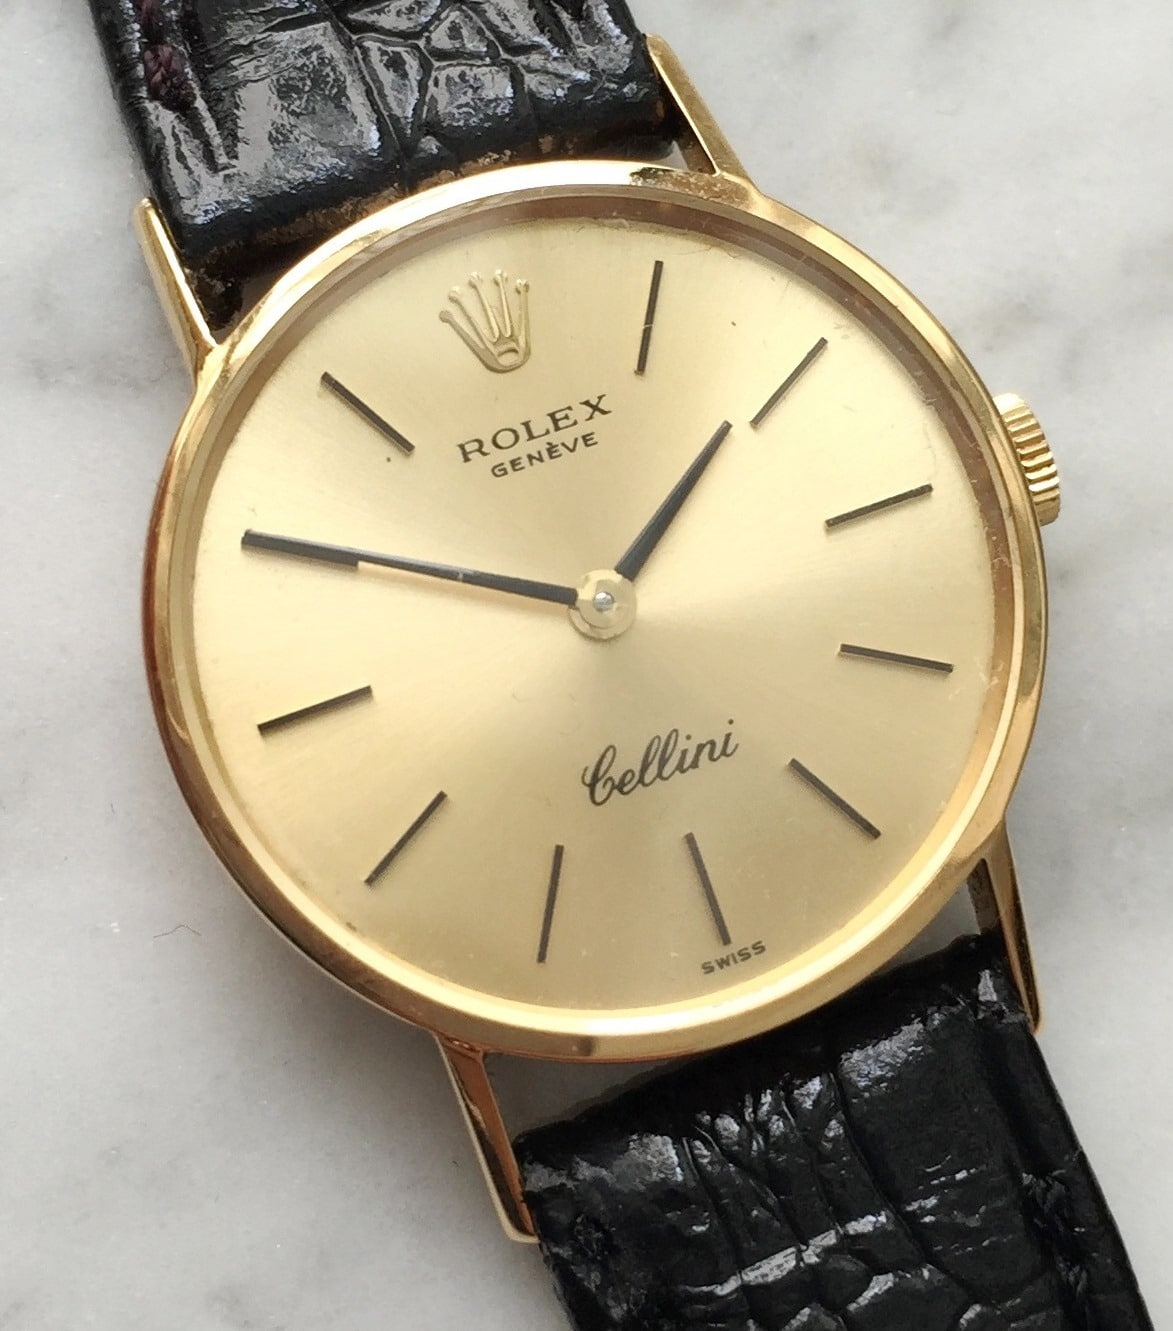 Rolex Cellini Ladies 18k Yellow Gold Vintage